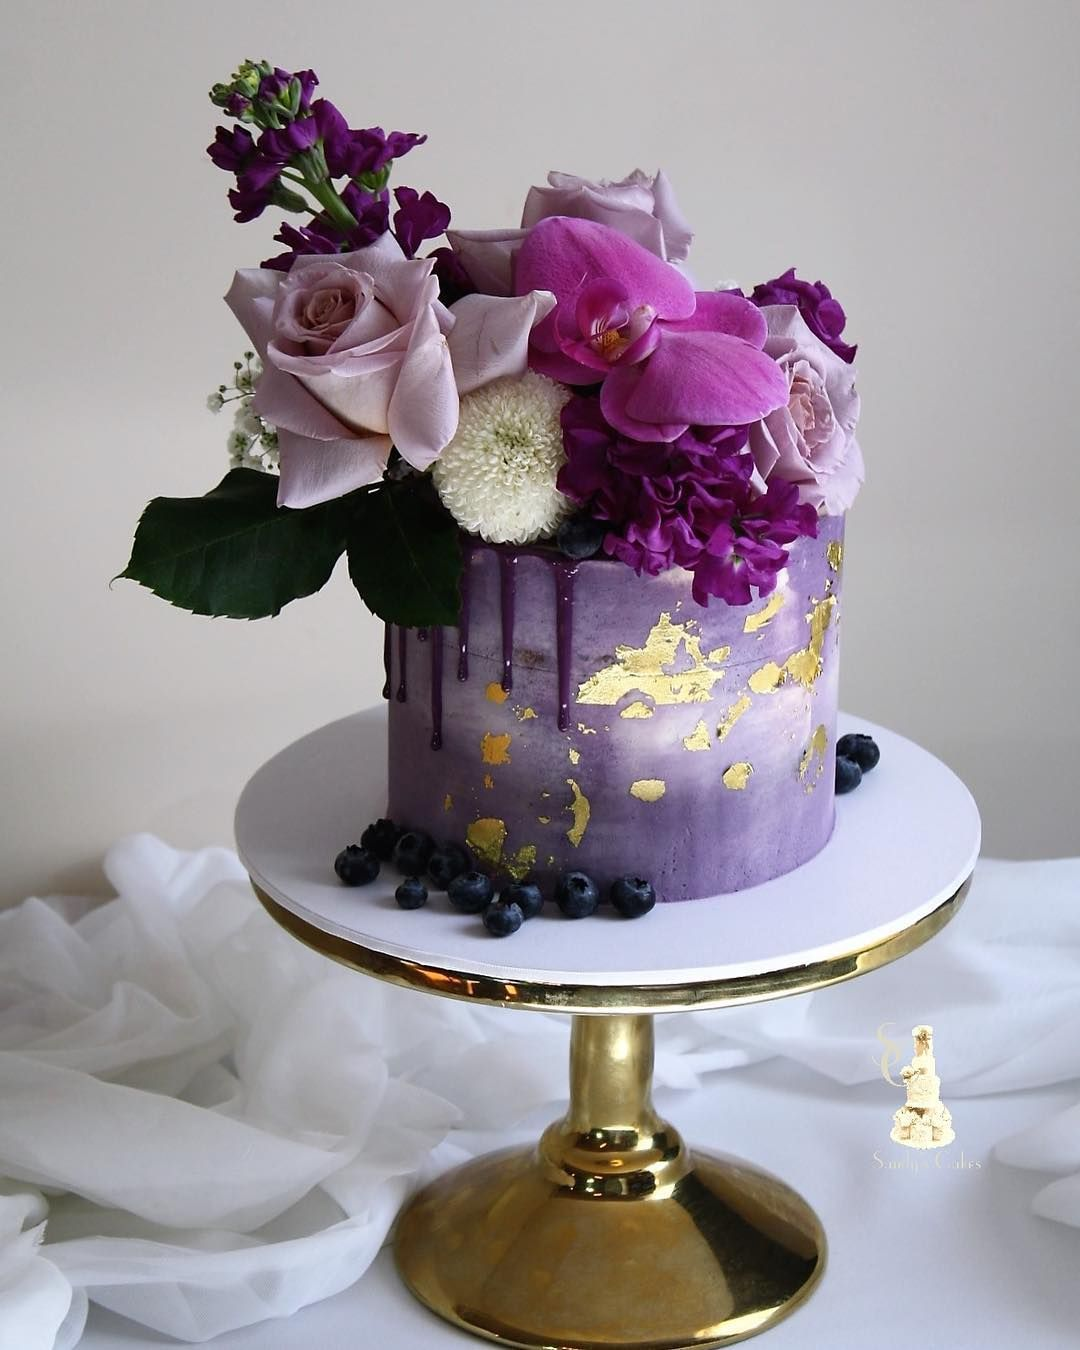 Cake decorating inspiration (With images)   Purple cakes ...